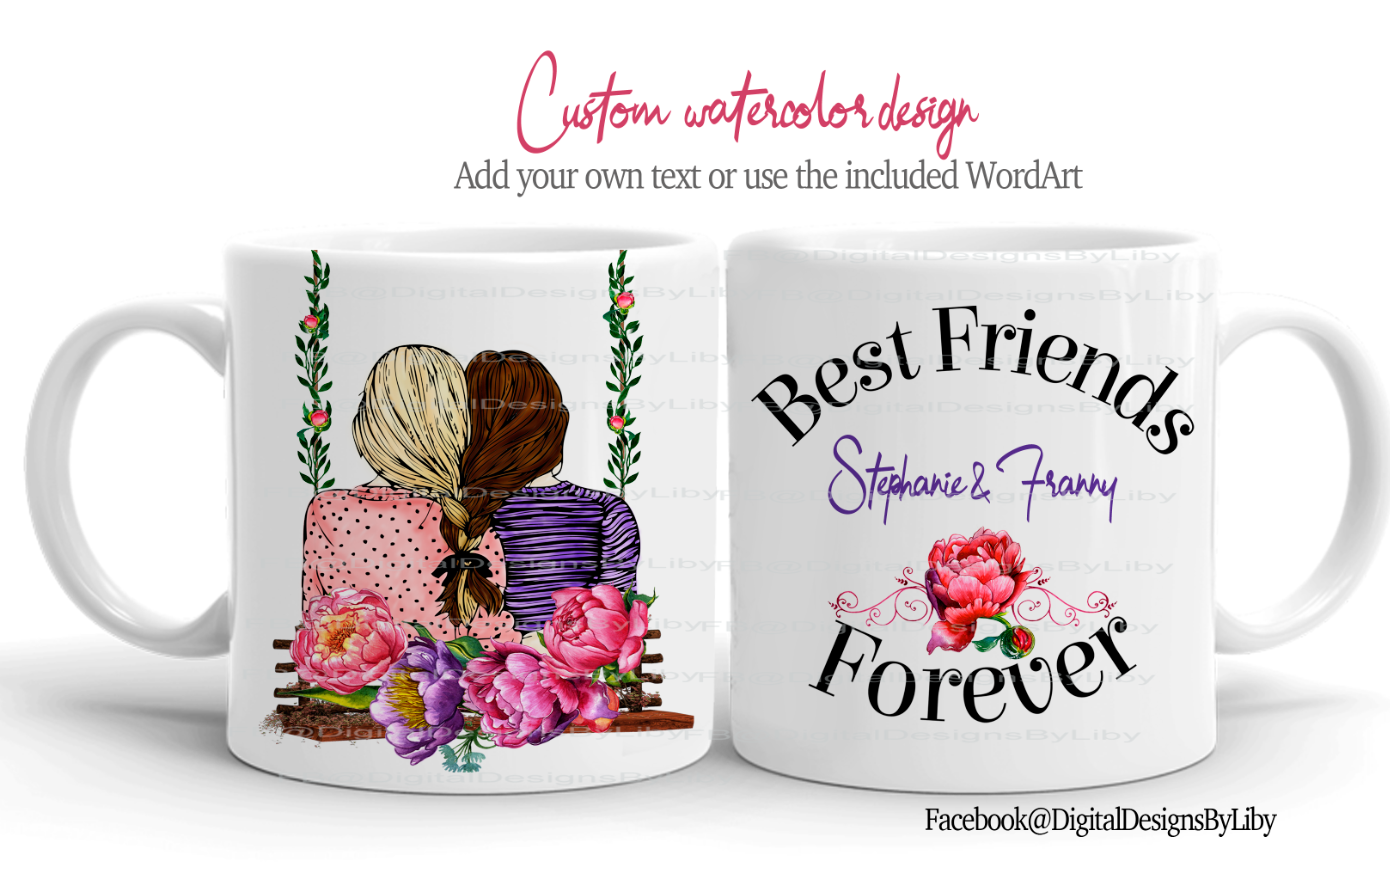 Best Friend Forever BFF + Bonus WordArt (MUG ONLY)